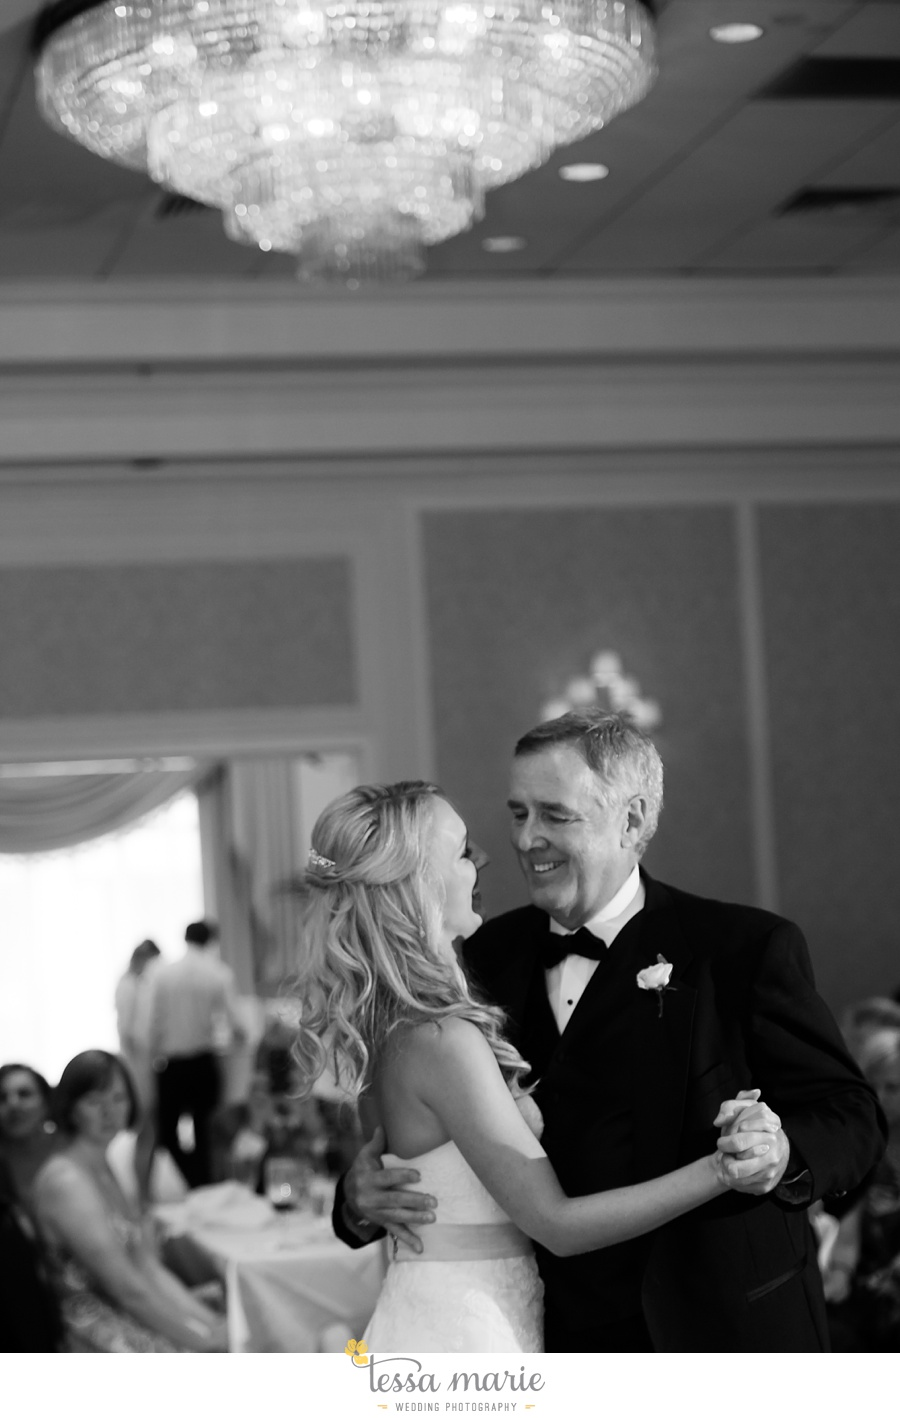 christ_the_king_wedding_pictures_Villa_christina_wedding_tessa_marie_weddings_0119